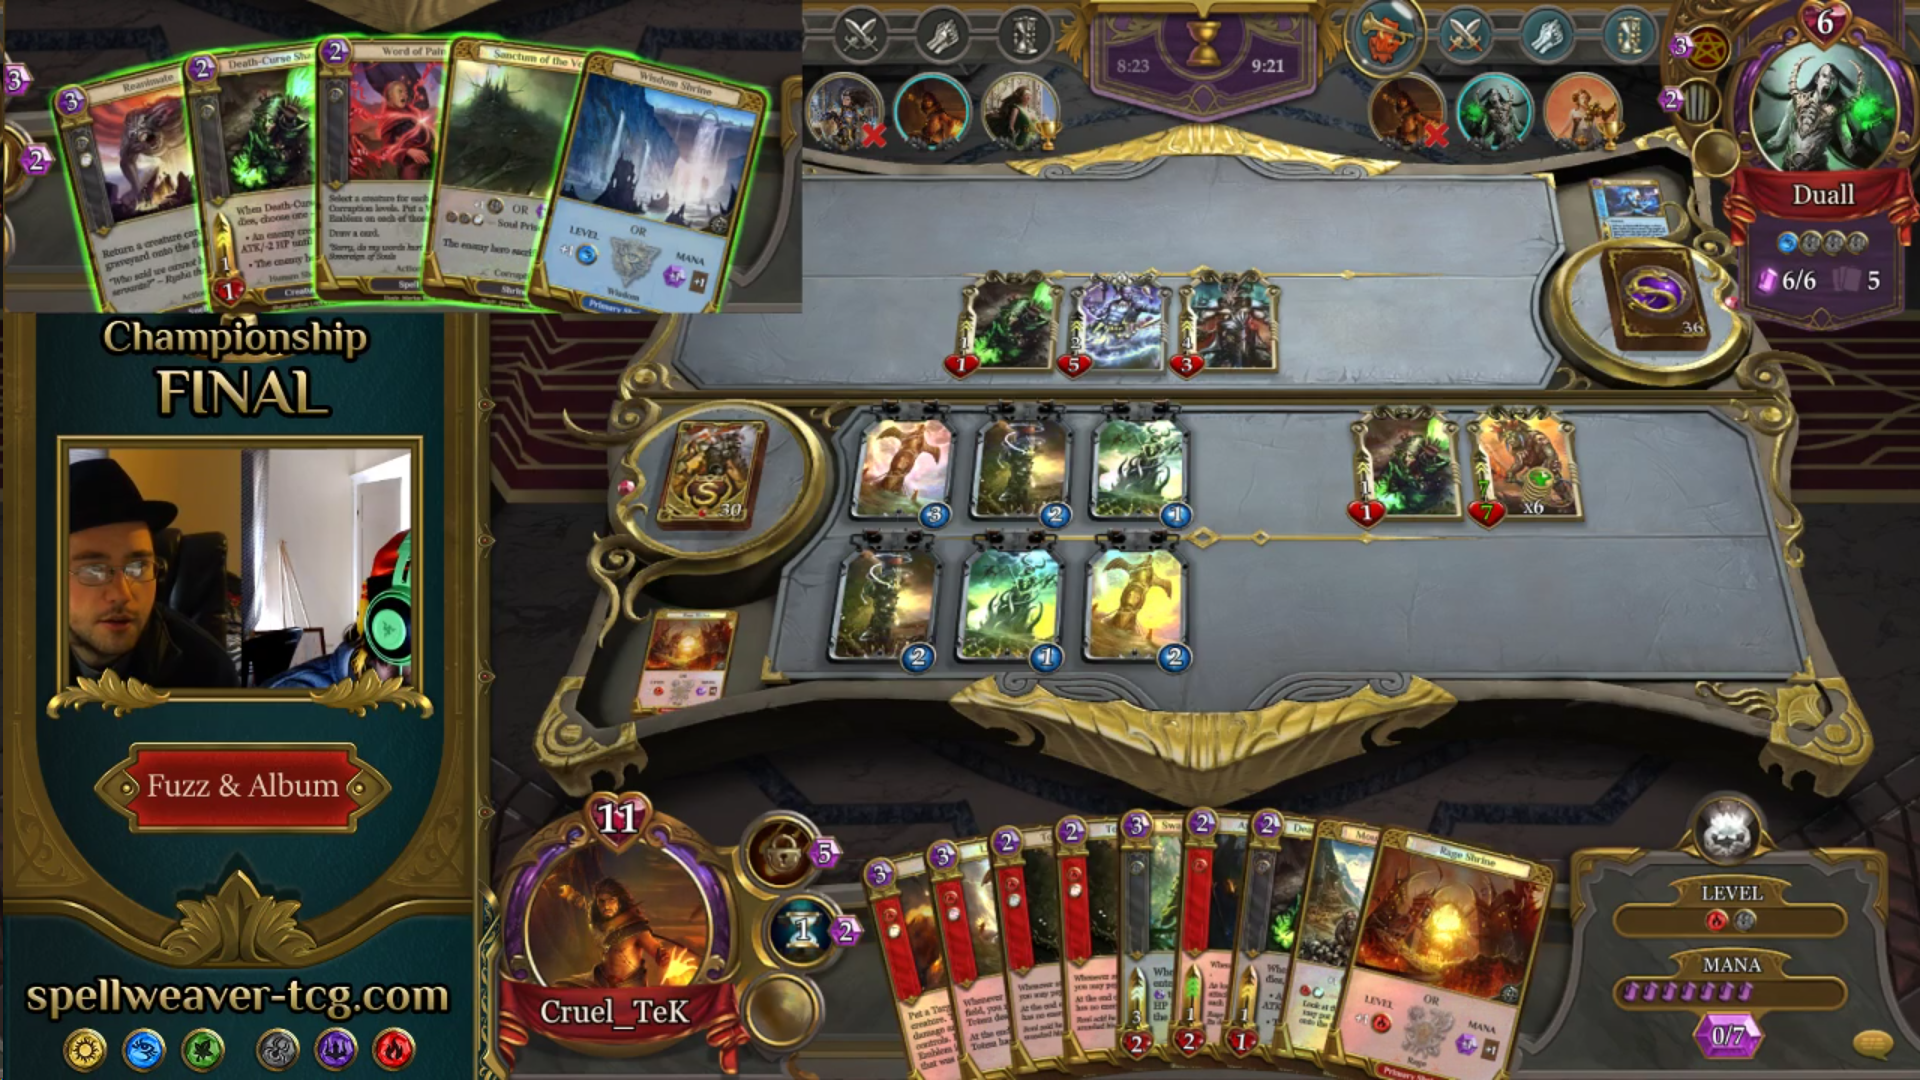 Can you find Lethal?